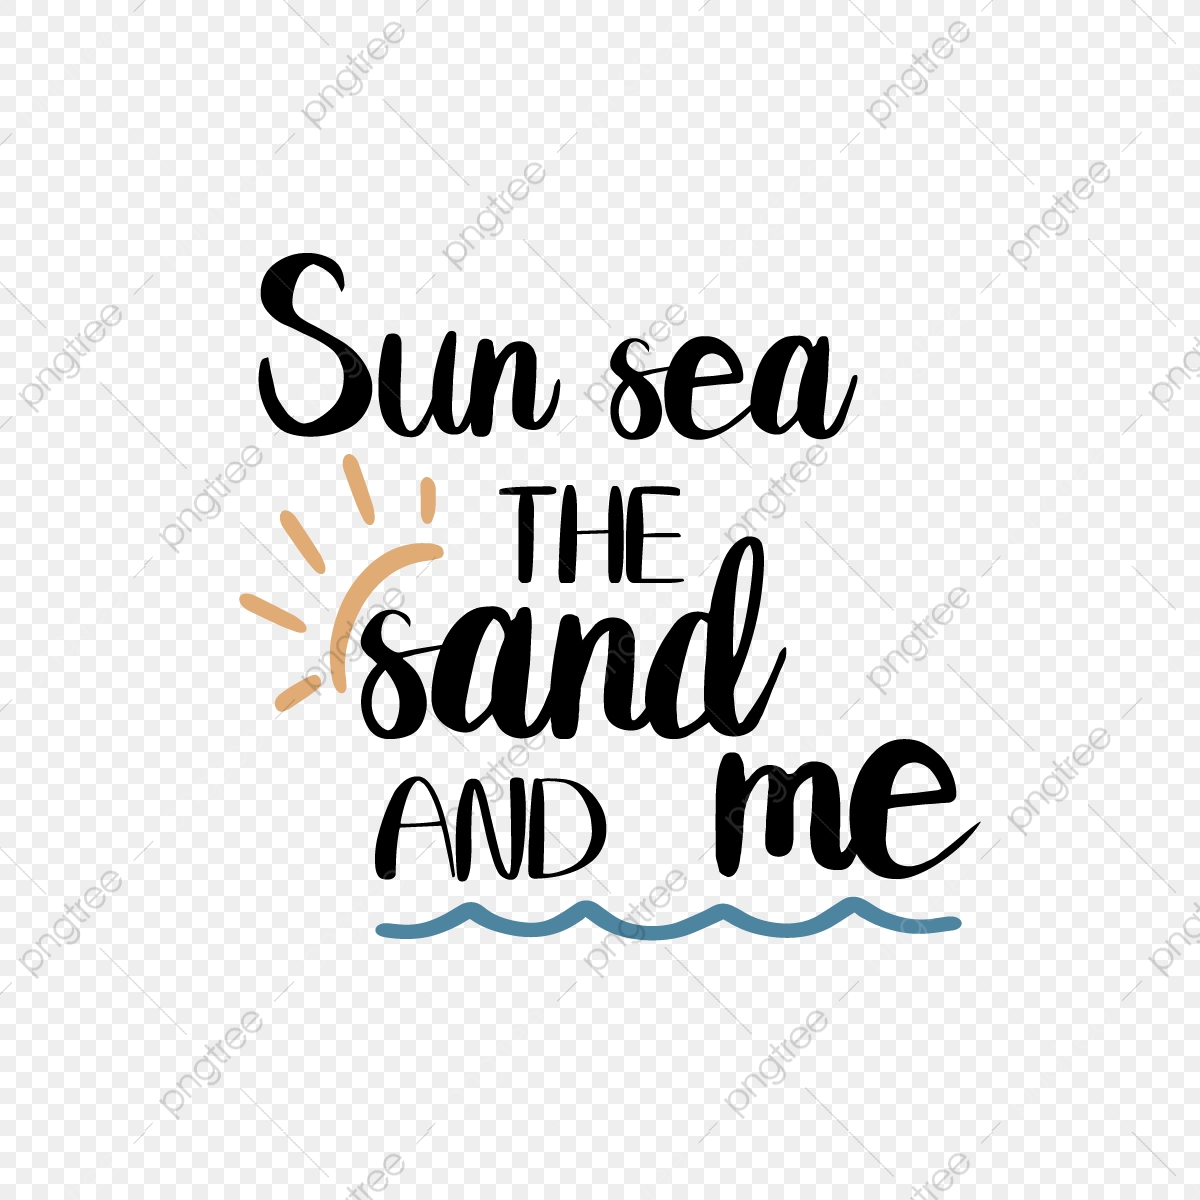 Svg Black Sunny Beach And Me Hand Drawn Ocean Illustration Font Effect Eps For Free Download